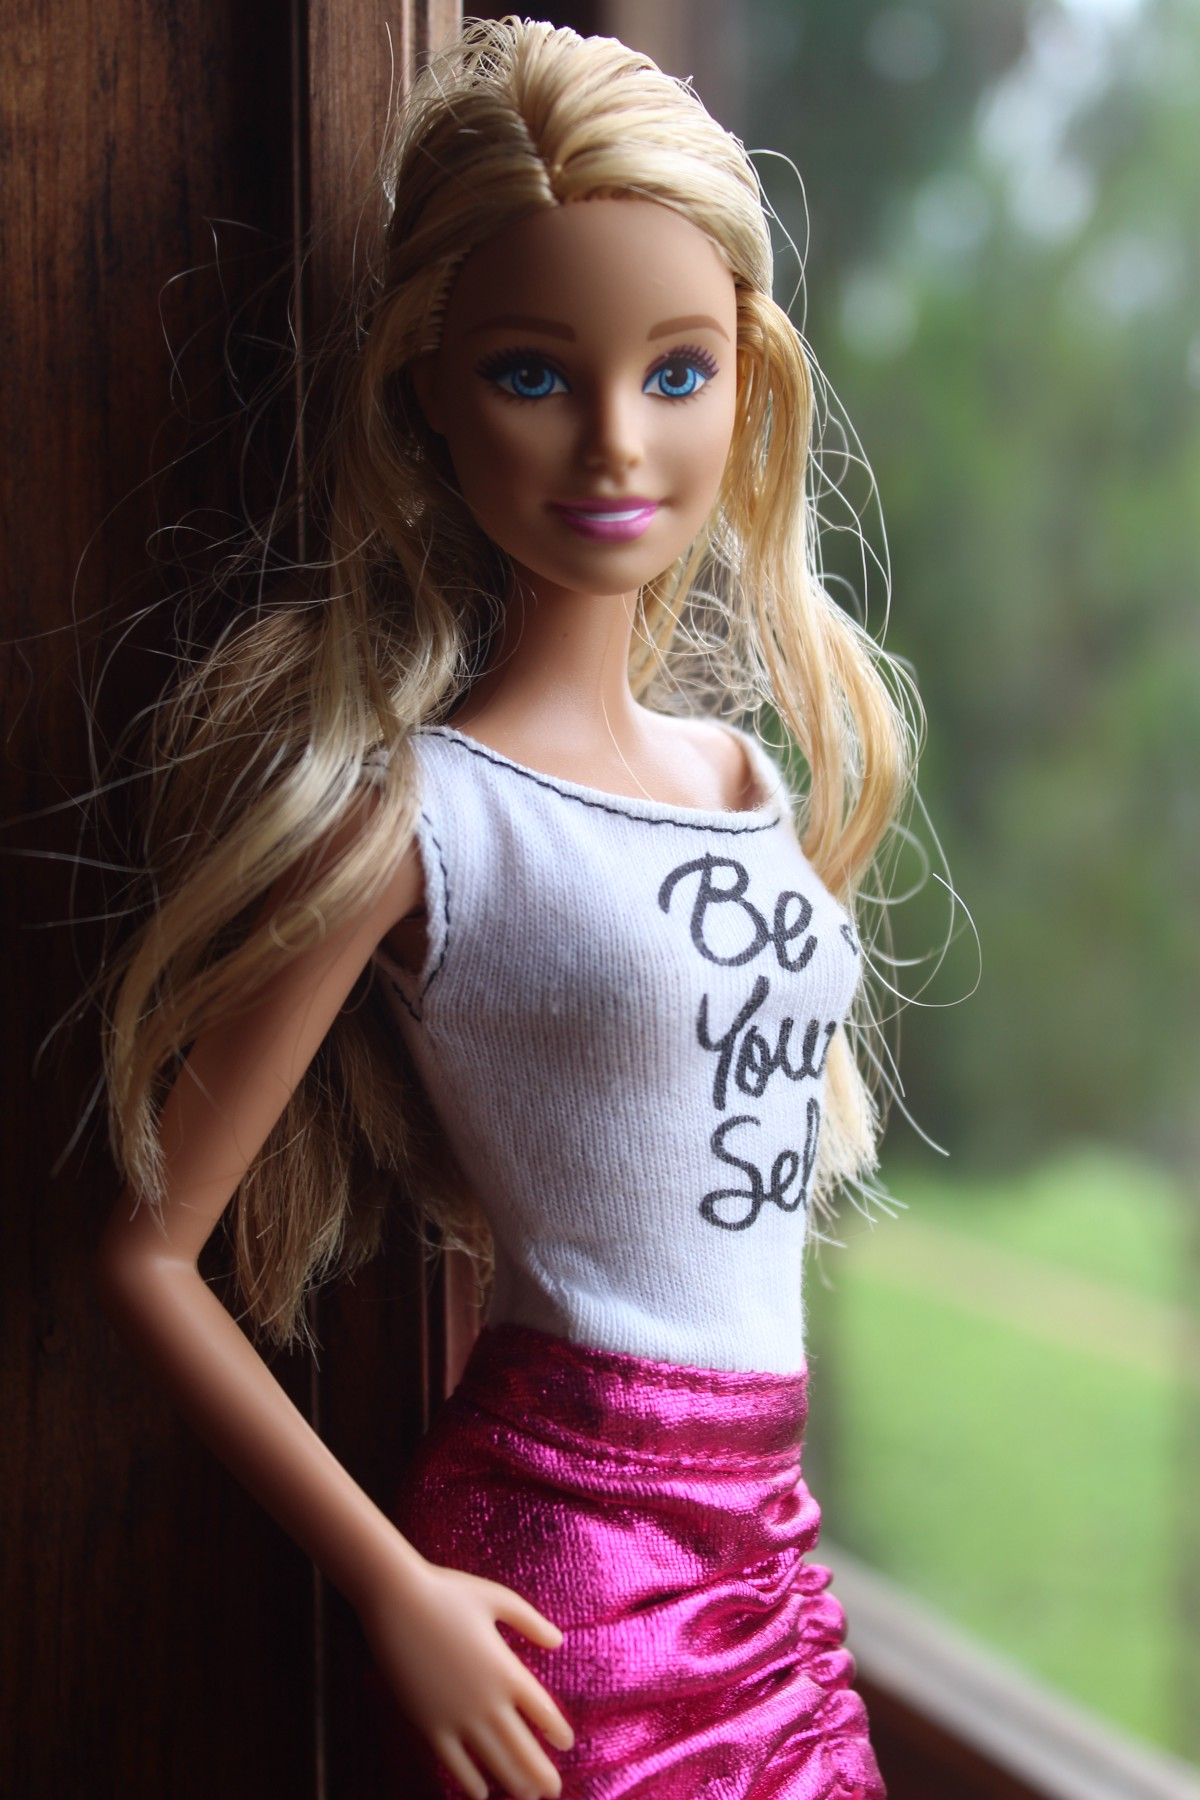 Introducing Librarian Barbie!